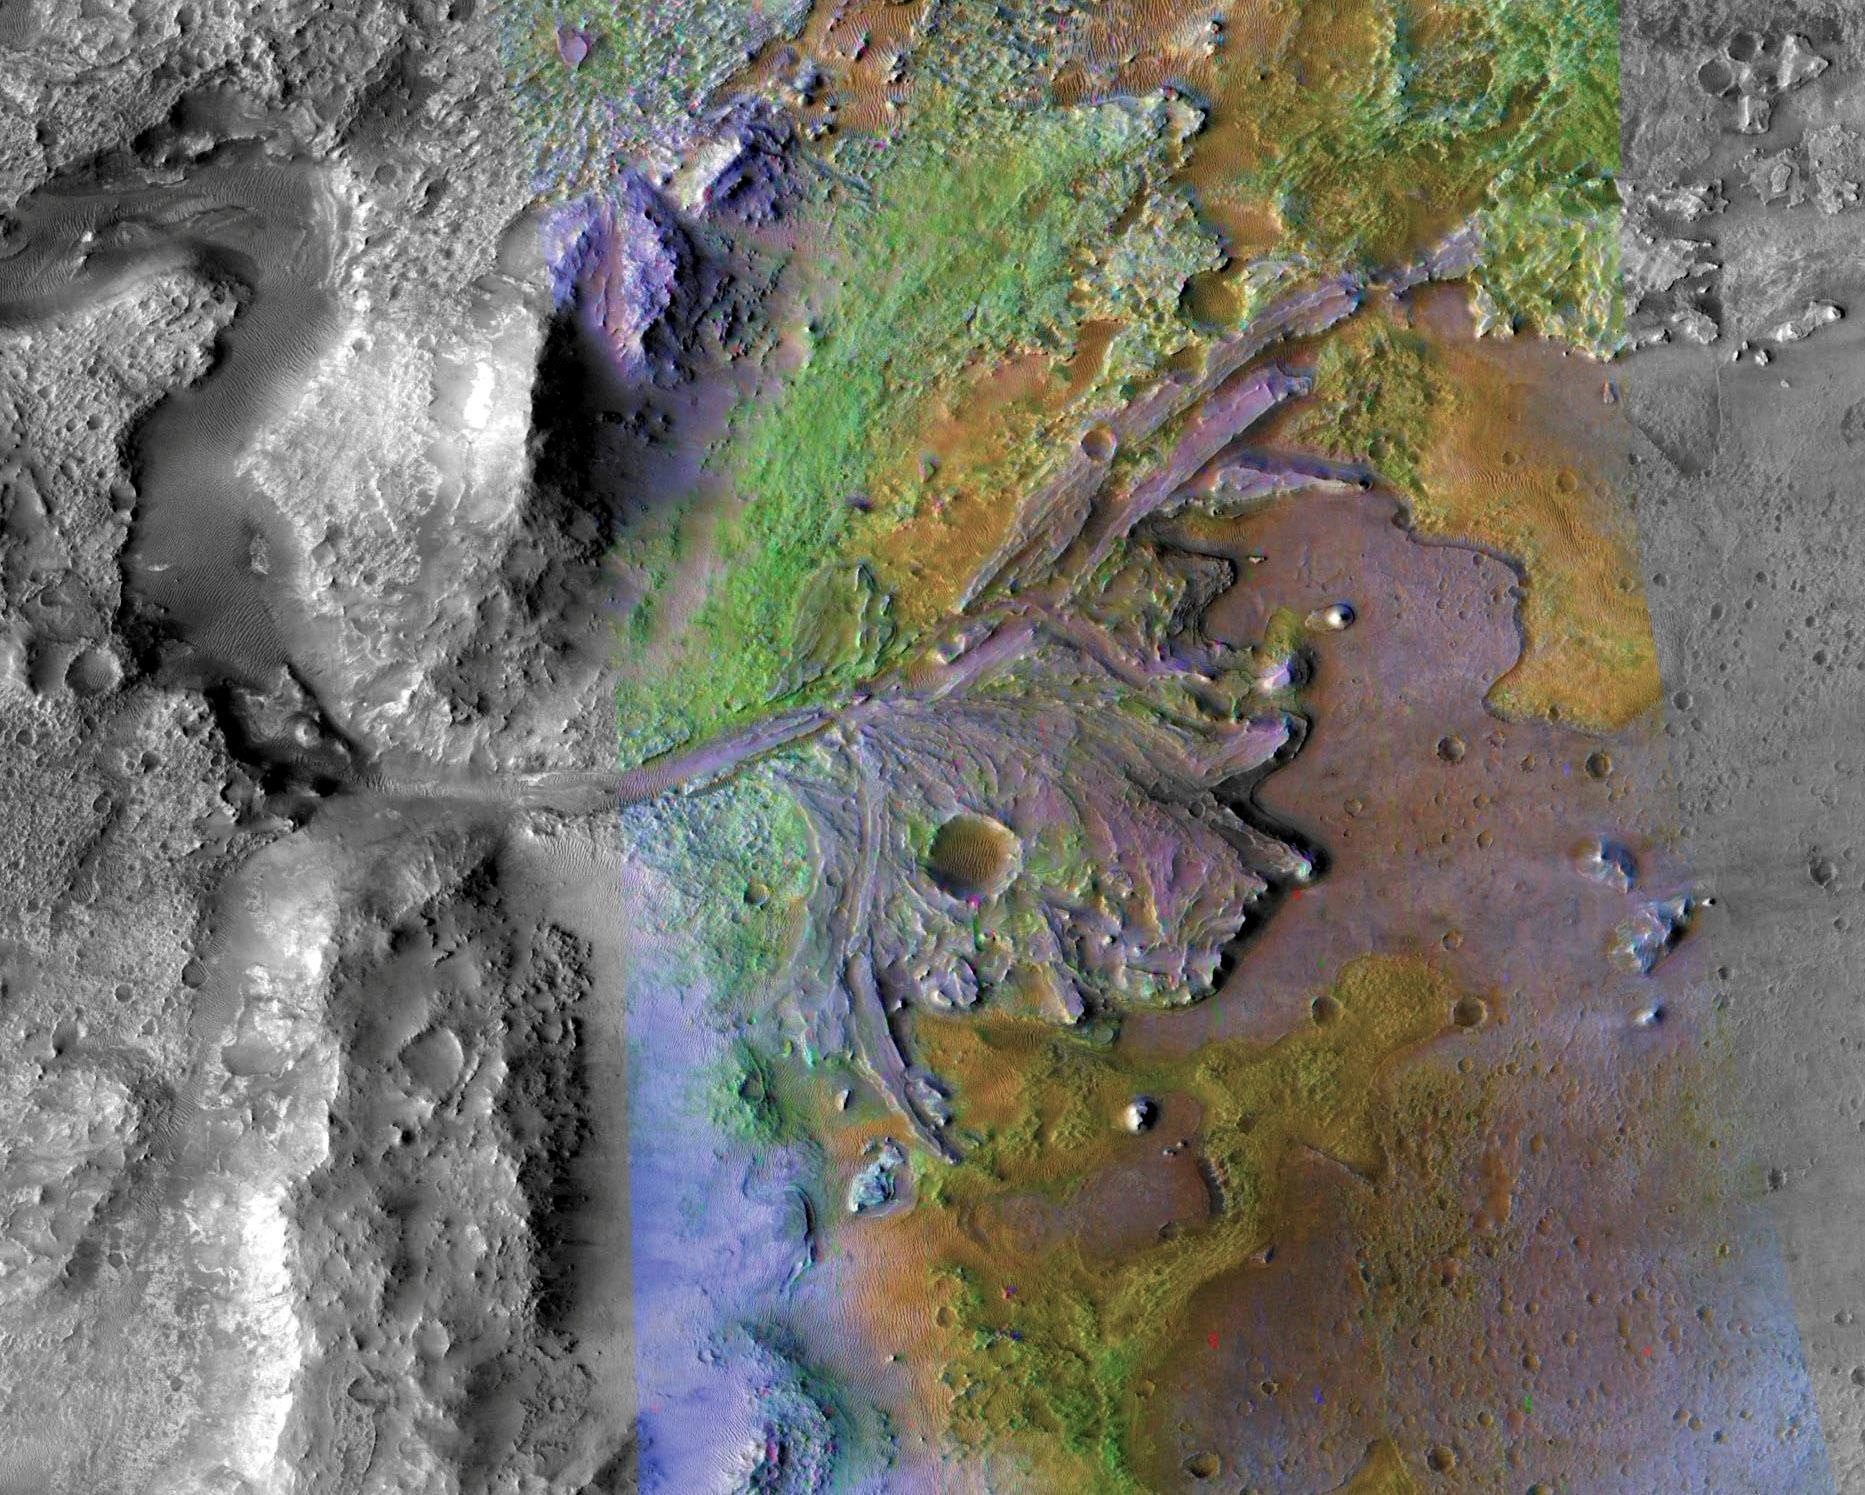 FILE PHOTO: Fans and deltas formed by water and sediment are seen in the Jezero Crater on Mars, identified as a potential landing site for the Mars 2020 Rover, in this false color image taken by NASA's Mars Reconnaissance Orbiter, published May 15, 2019 and obtained November 15, 2019. NASA/JPL-Caltech/Handout via REUTERS ATTENTION EDITORS - THIS IMAGE HAS BEEN SUPPLIED BY A THIRD PARTY/File Photo